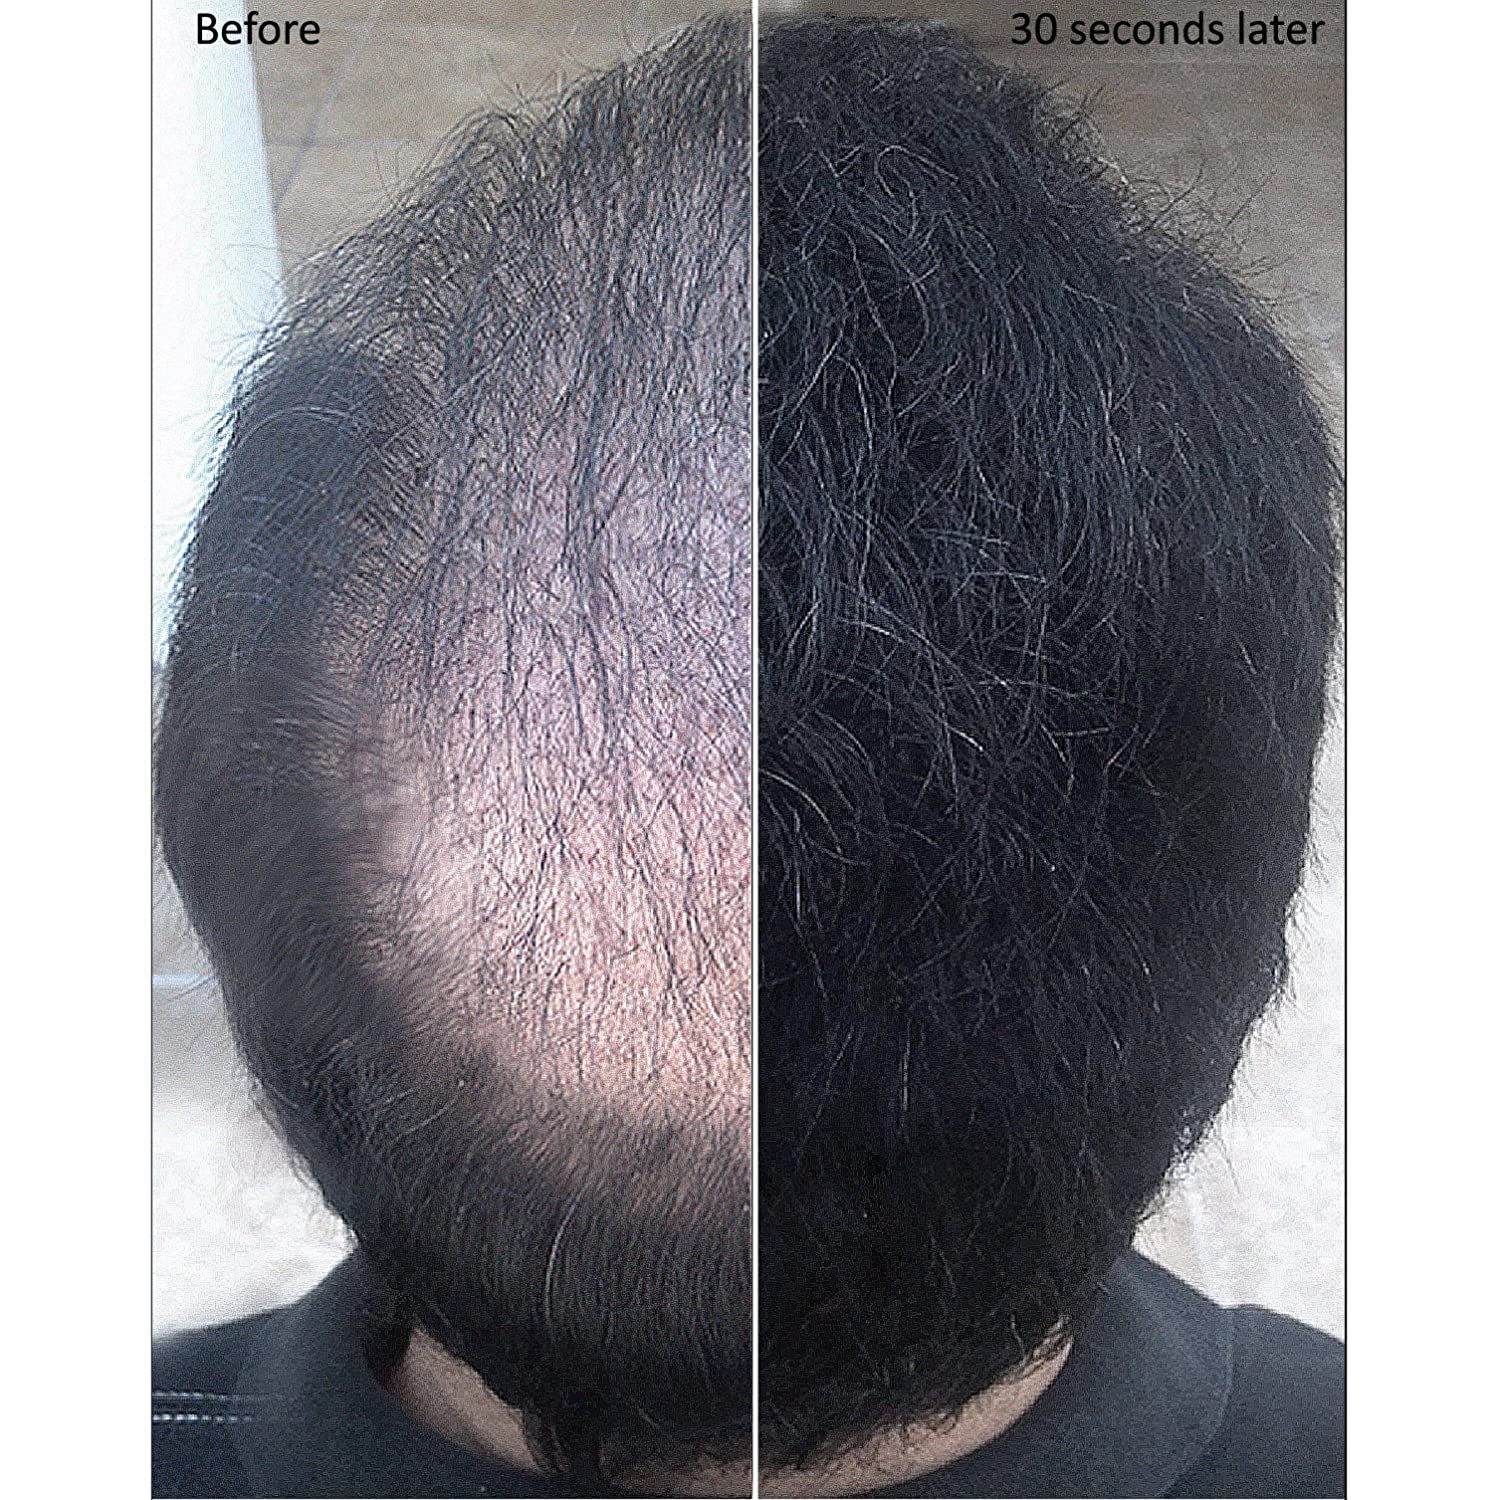 Black Color Samson Best Hair Loss Concealer Building Caboki Fiber Usa Original Fibers Container With 25grams Also Fits Toppik Xfusion Spray Applicators Beauty